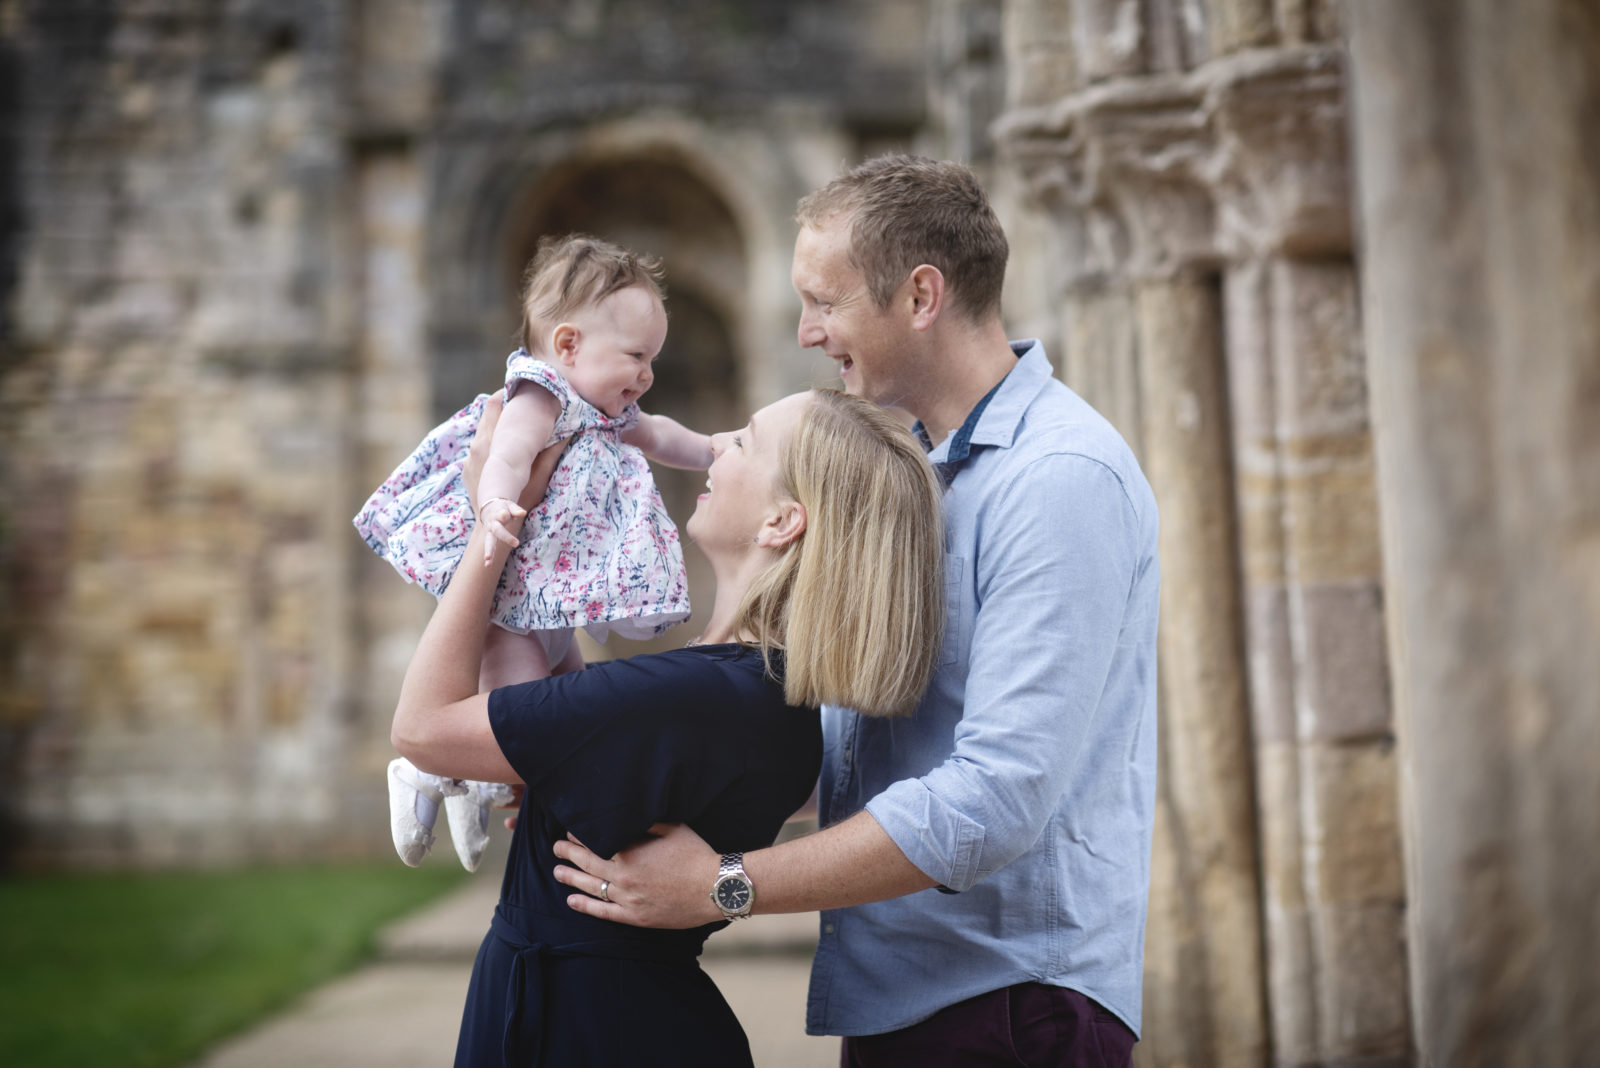 Couple with baby at naming ceremony